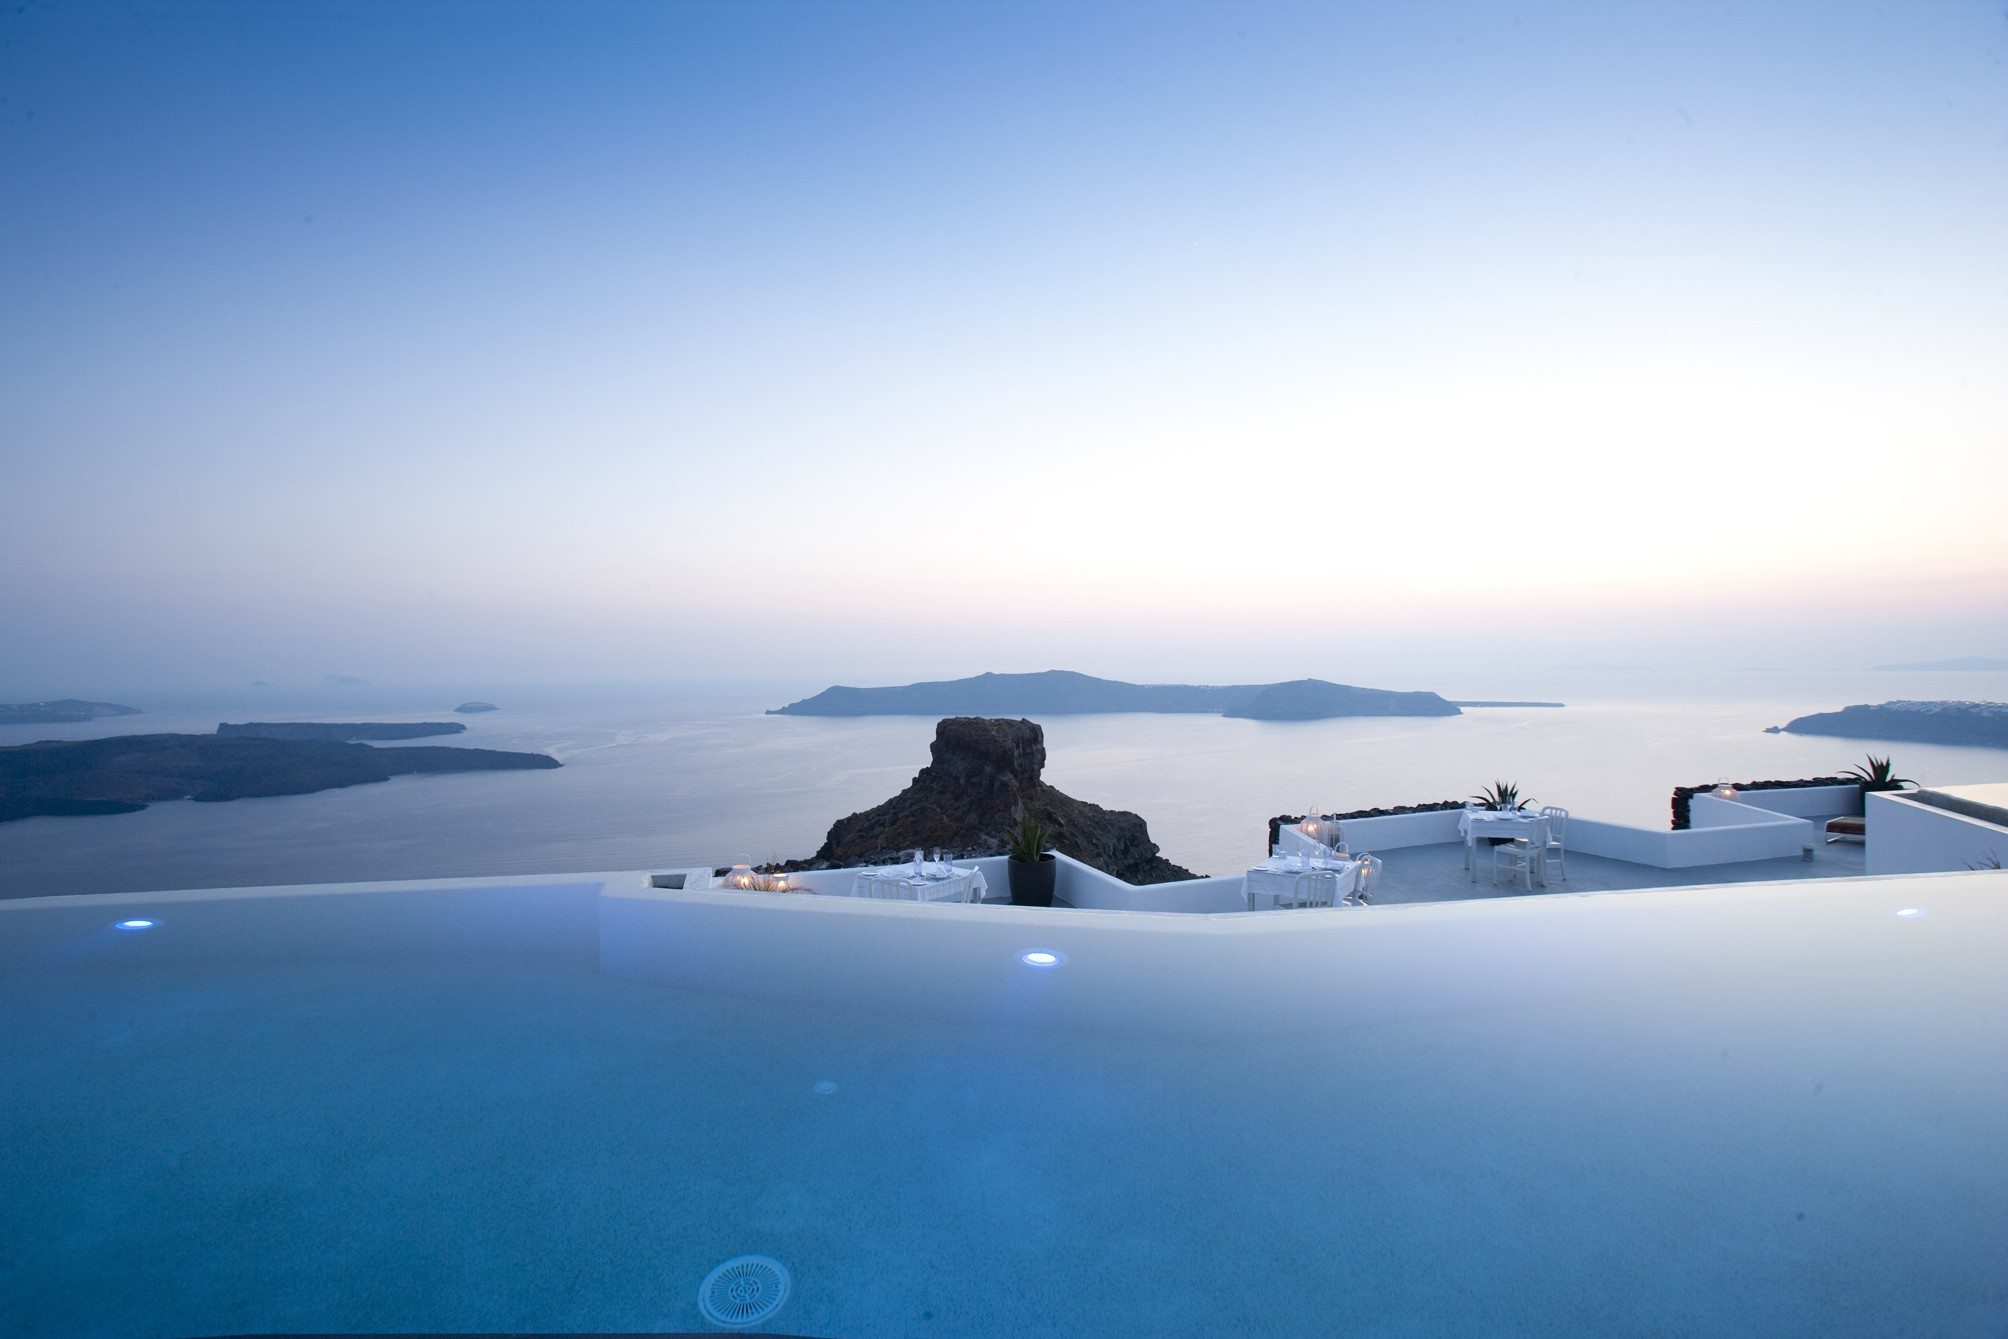 Grace santorini greece infinity pools - Santorini infinity pool ...